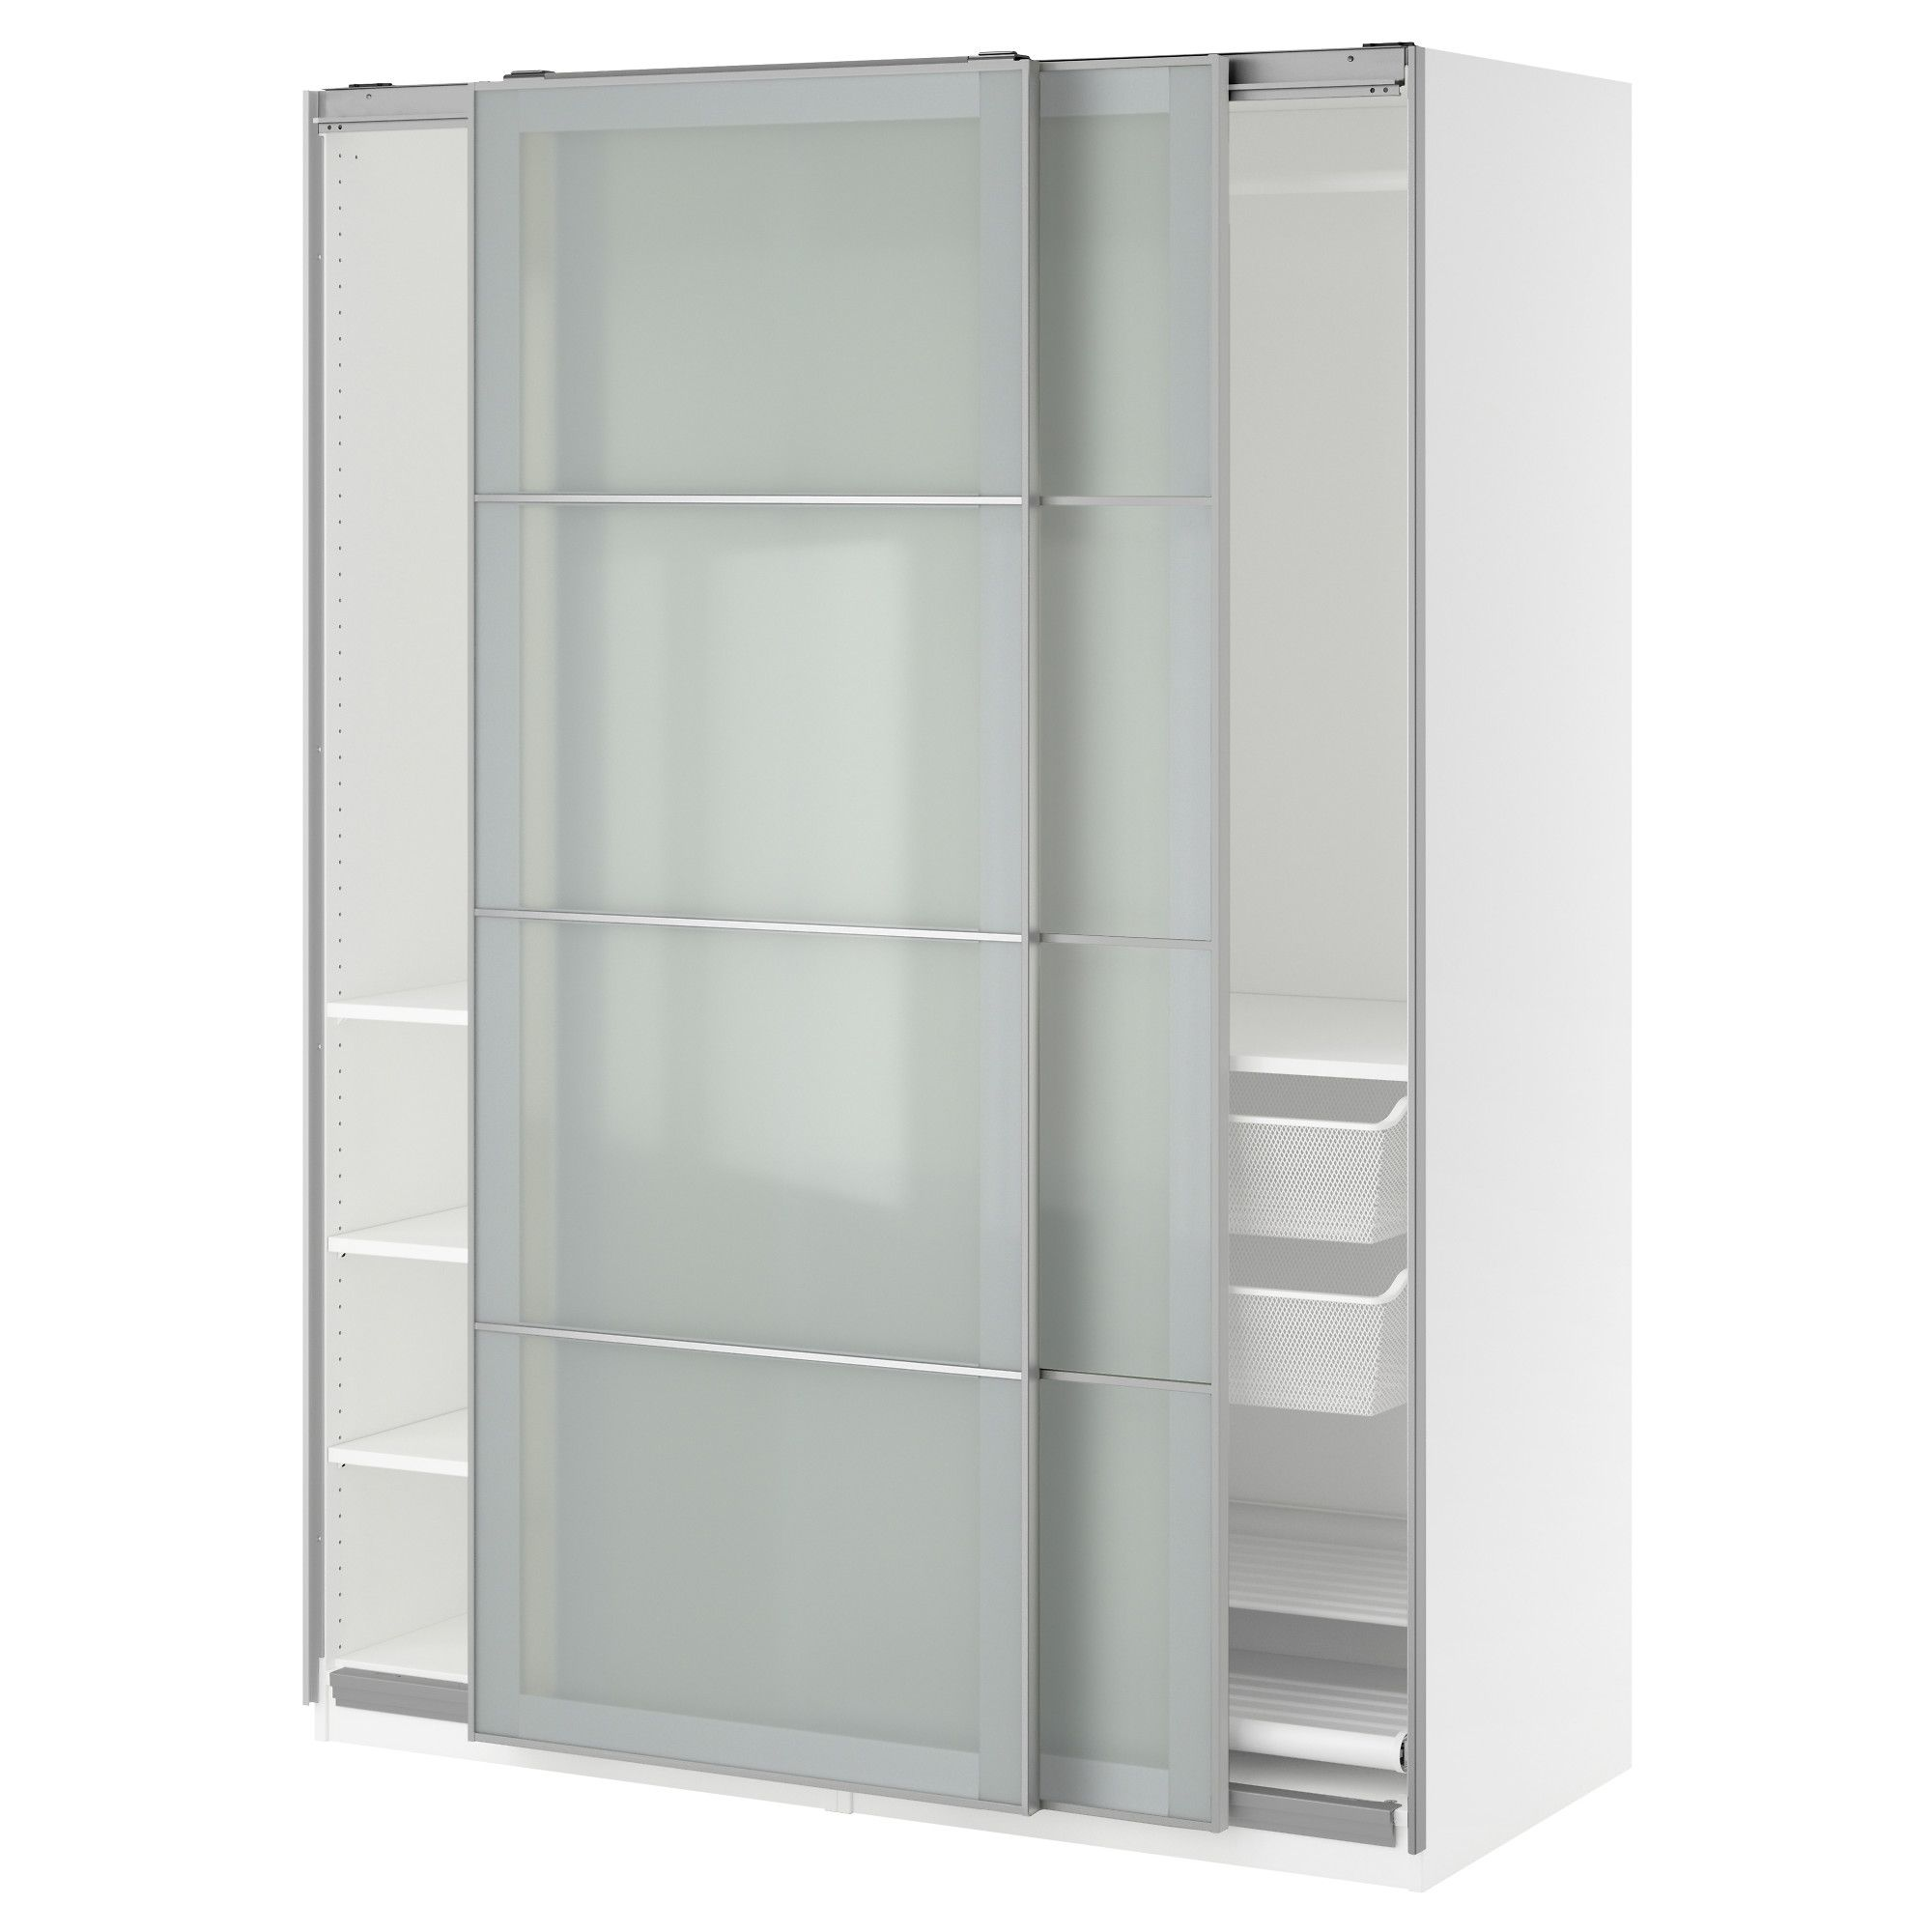 Ikea Pax Wardrobe 150x66x201 Cm Soft Closing Damper 10 Year Limited Warranty Read About The Terms In Brochure